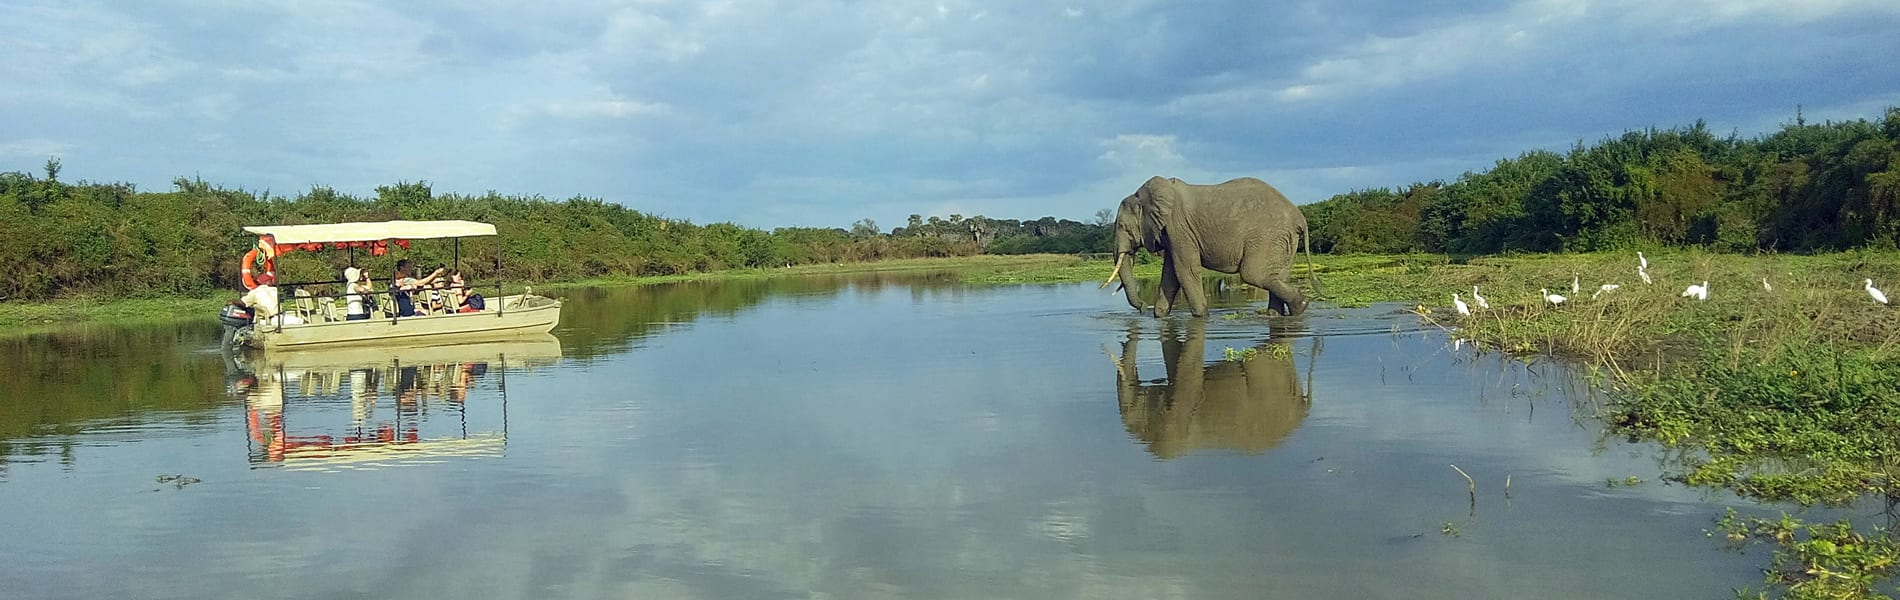 Lake Manze Tented Camp boot safari